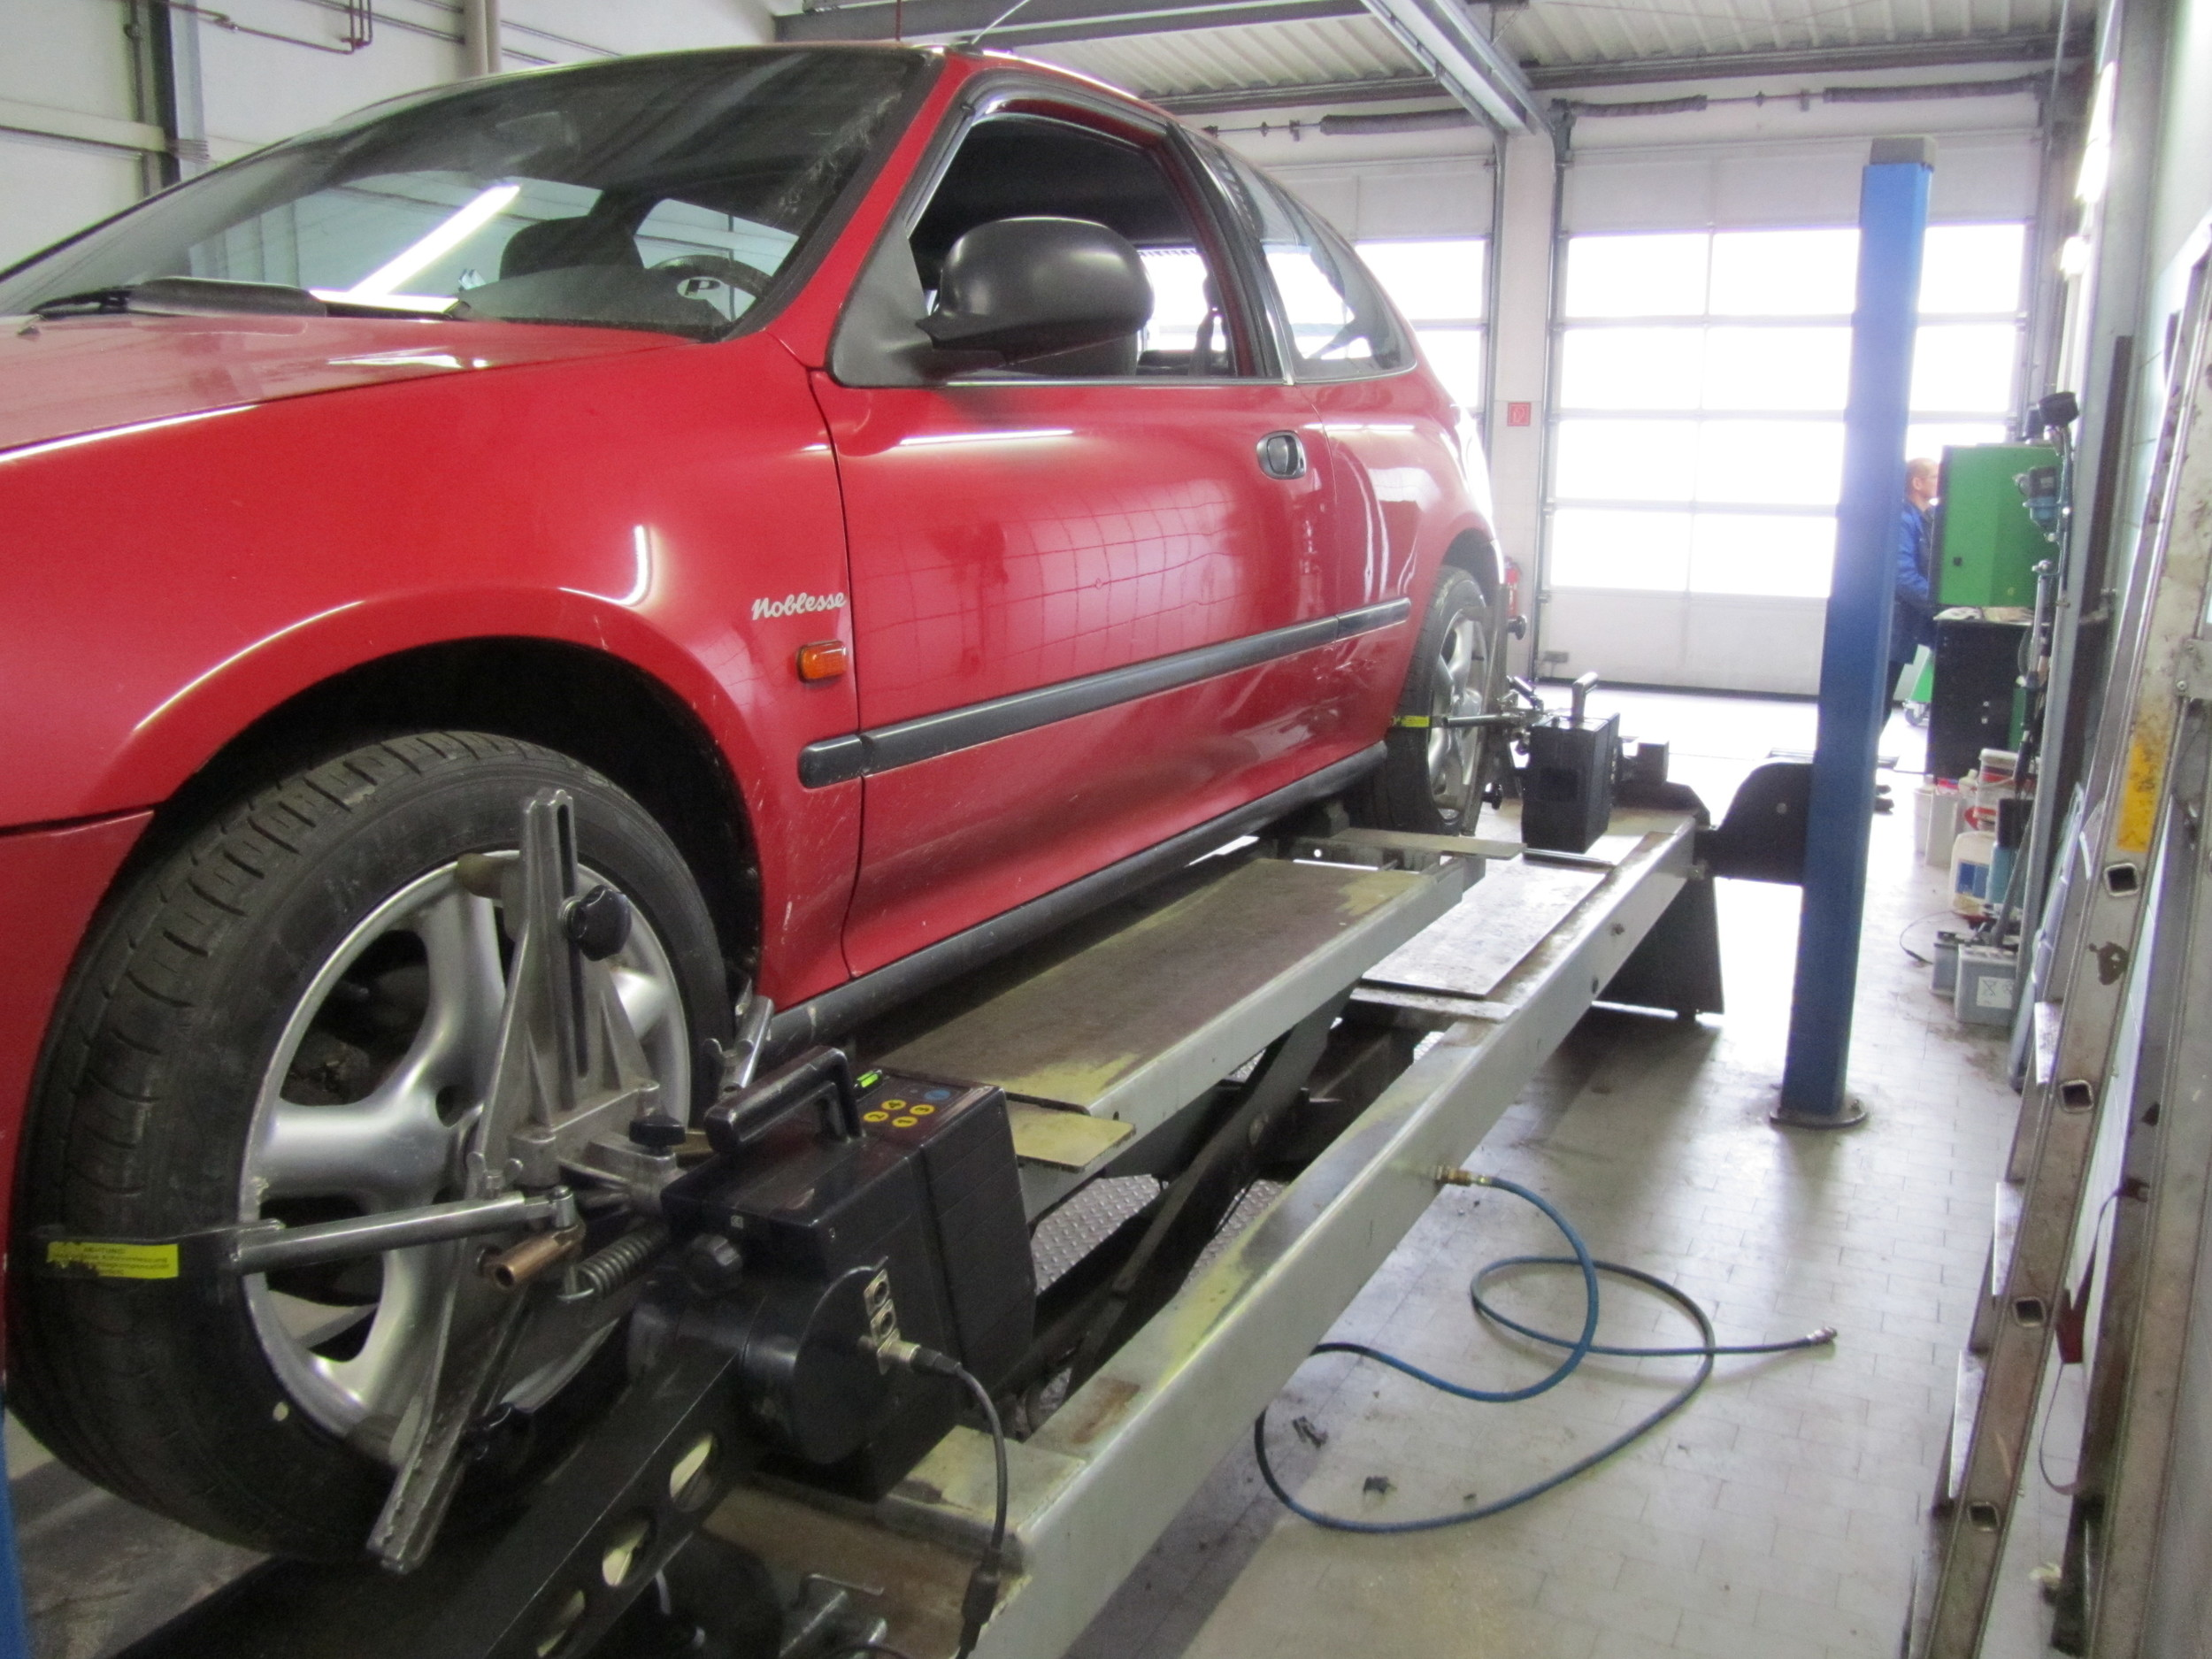 6. To finish the day at the garage, the alignment needed to be done using a pretty cool laser driven system.